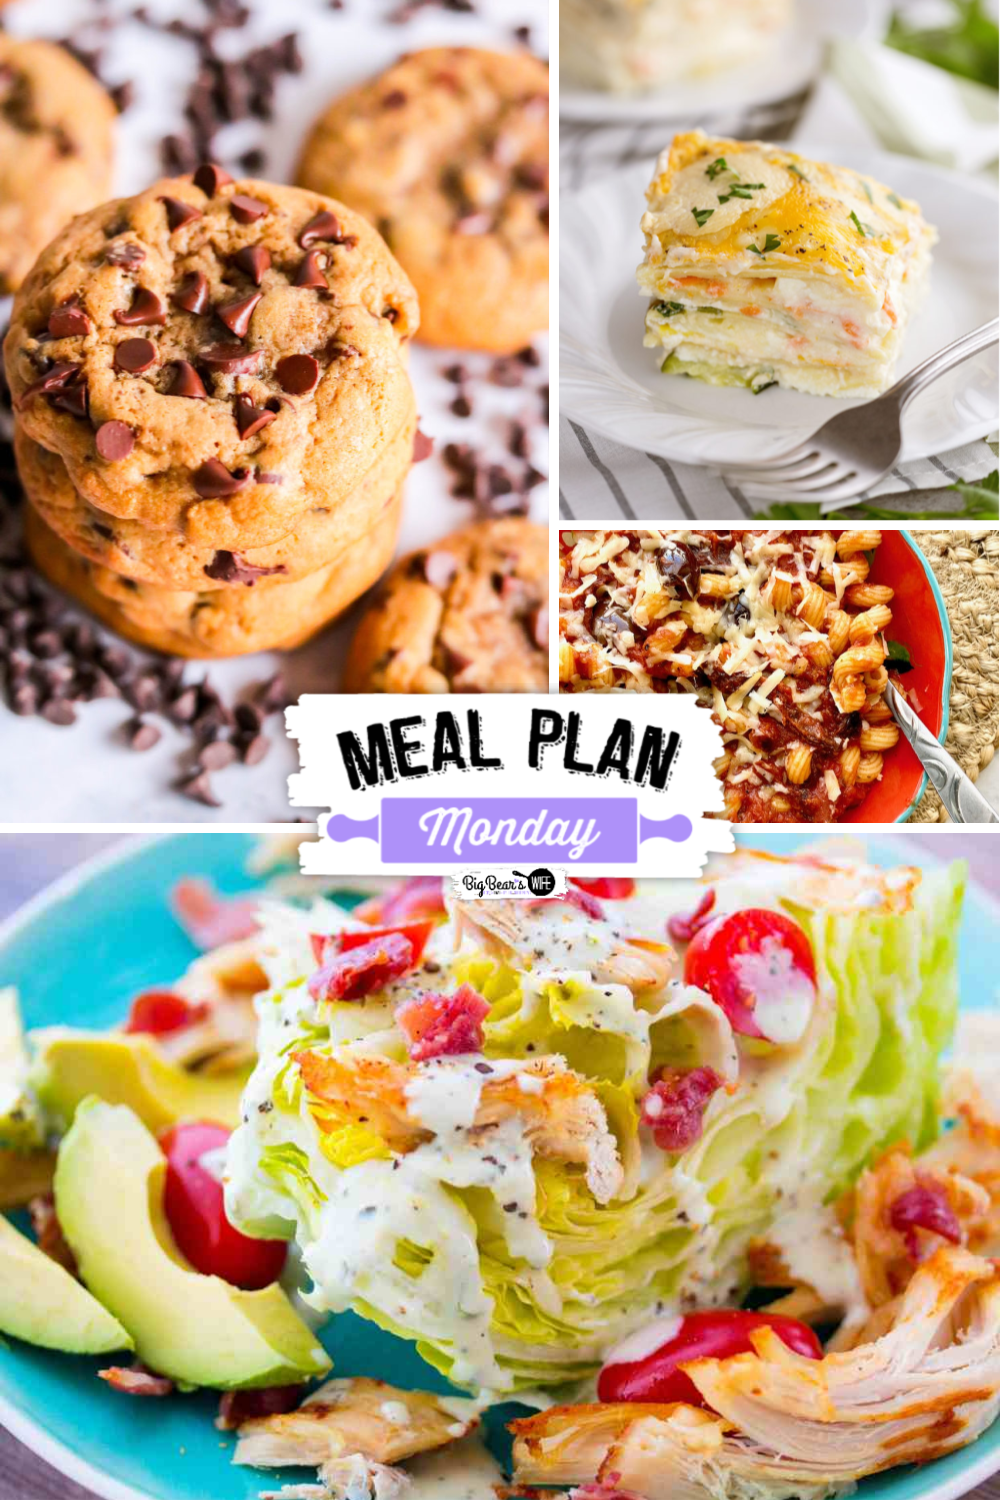 Meal Plan Monday Edition 205 is ready to go with loaded of recipes to help out with your weekly Meal Planning! We're featuring Easy Vegetable Lasagna with Alfredo Sauce,Sun Dried Tomato Pasta,Avocado Bacon Chicken Iceberg Lettuce Wedge Salad,Dark Brown Sugar Chocolate Chip Cookies and so much more!! via @bigbearswife